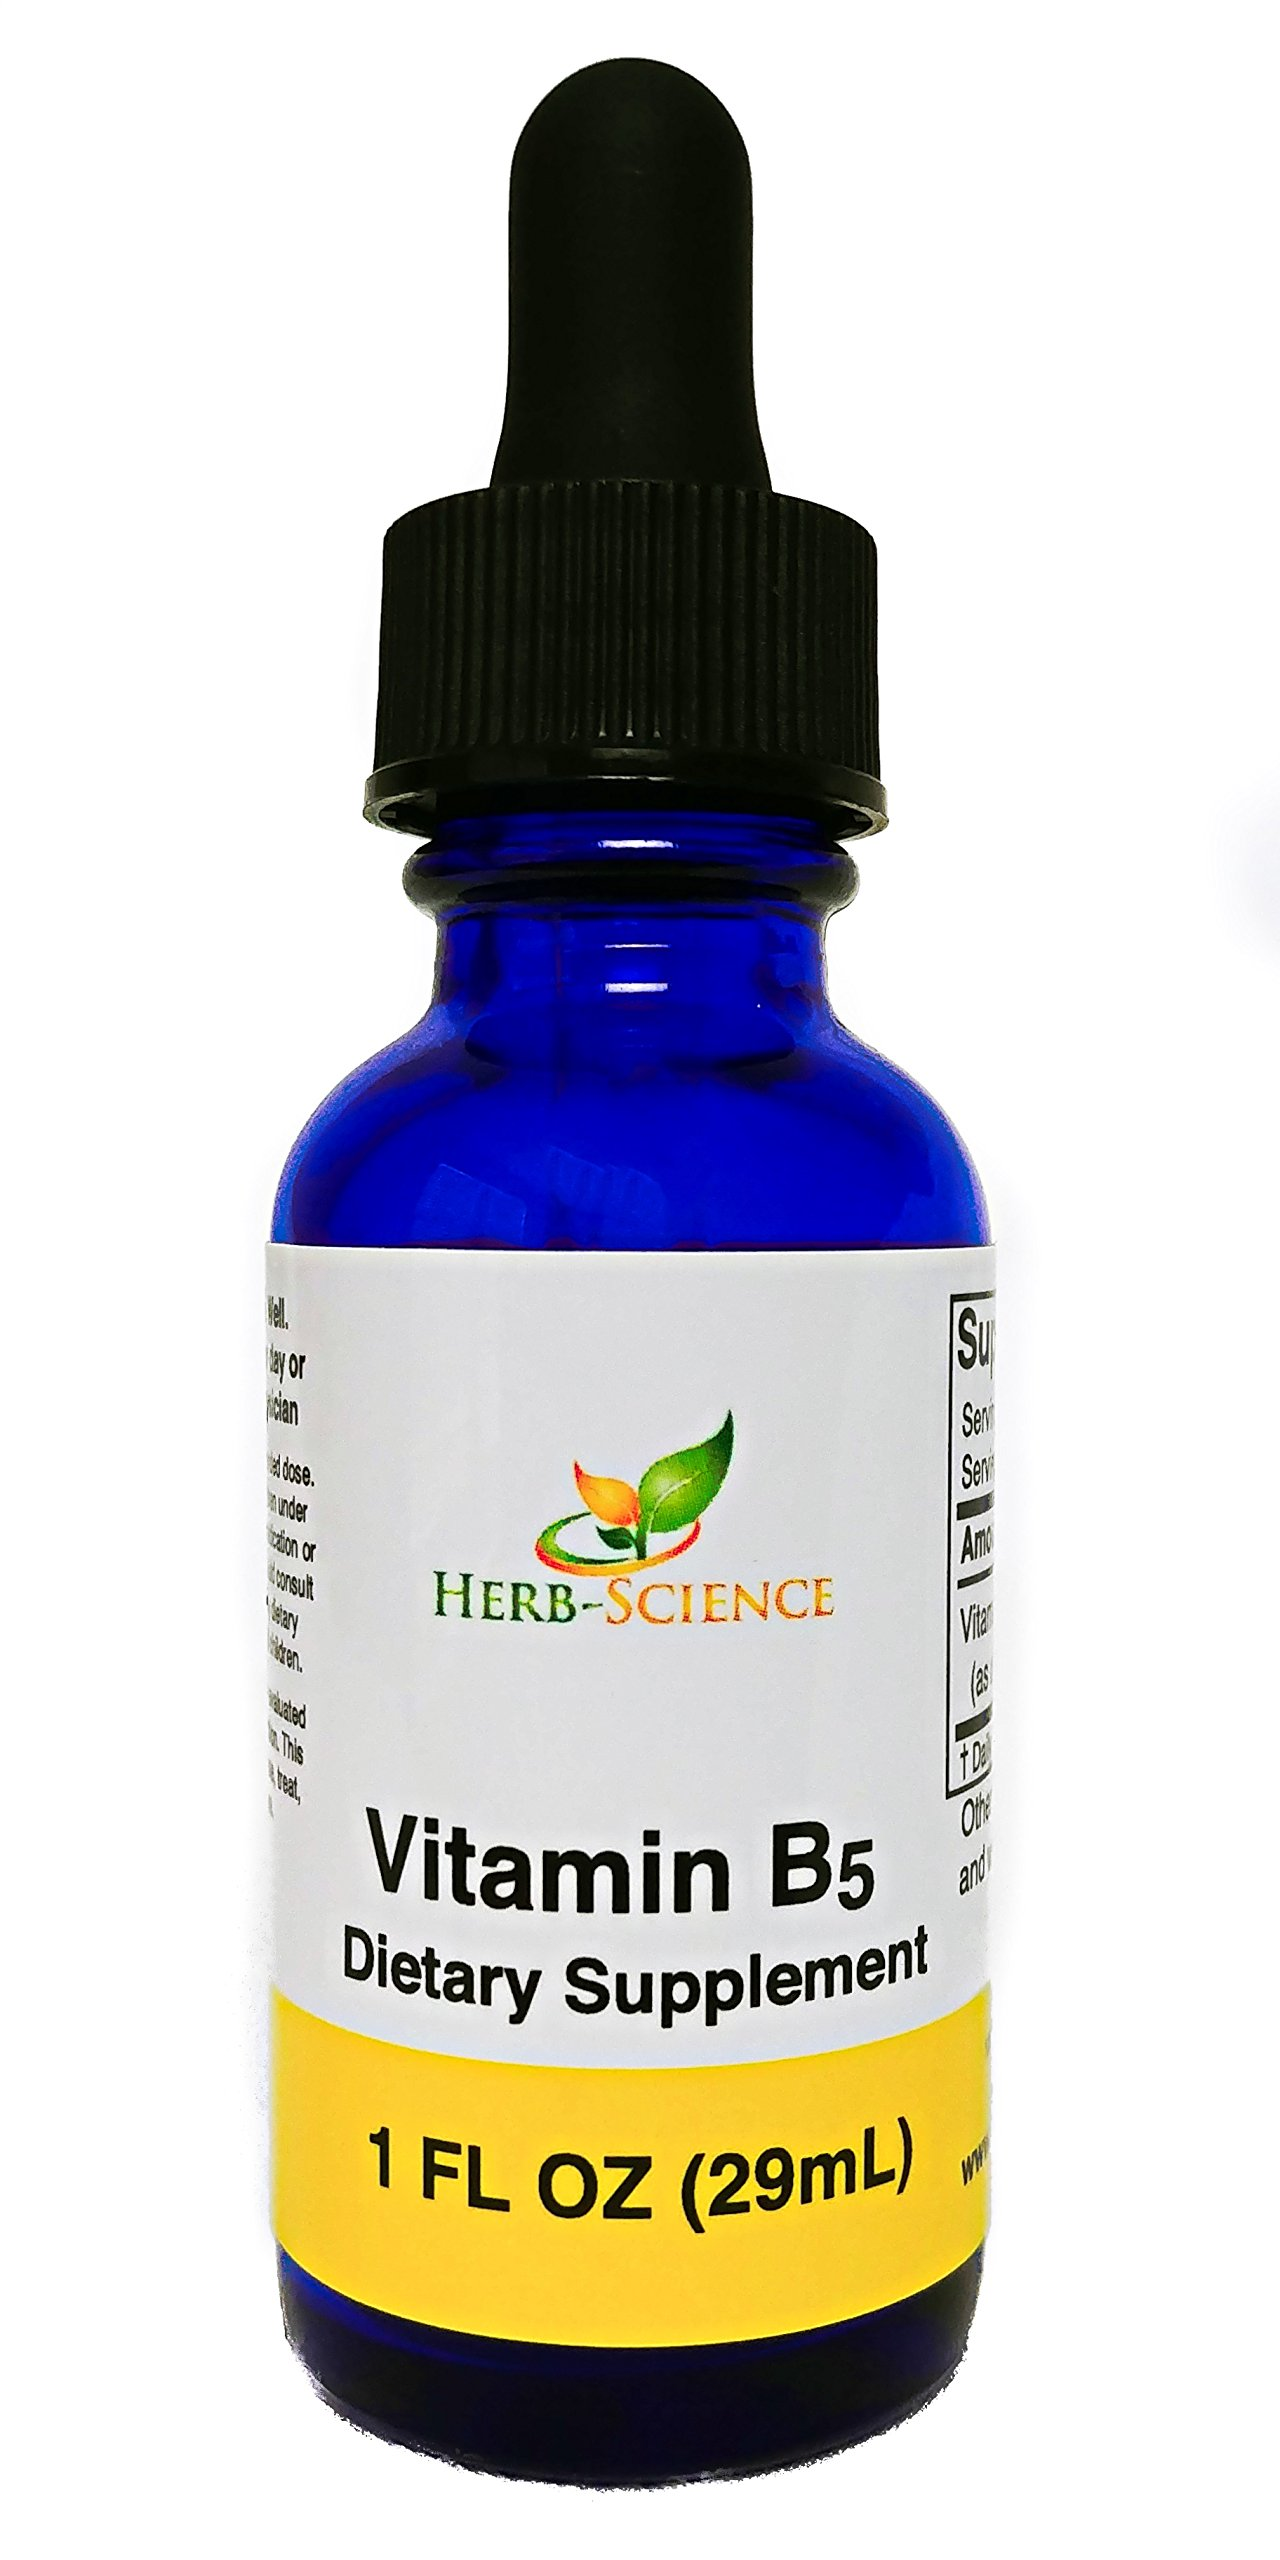 Vitamin B5 Pantothenic Acid, Alcohol-Free Liquid Extract Maintain Healthy Hormones, Support Heart Health, Help Keep Skin and Hair Healthy and Support Immune System - Herb-Science by Herb-Science